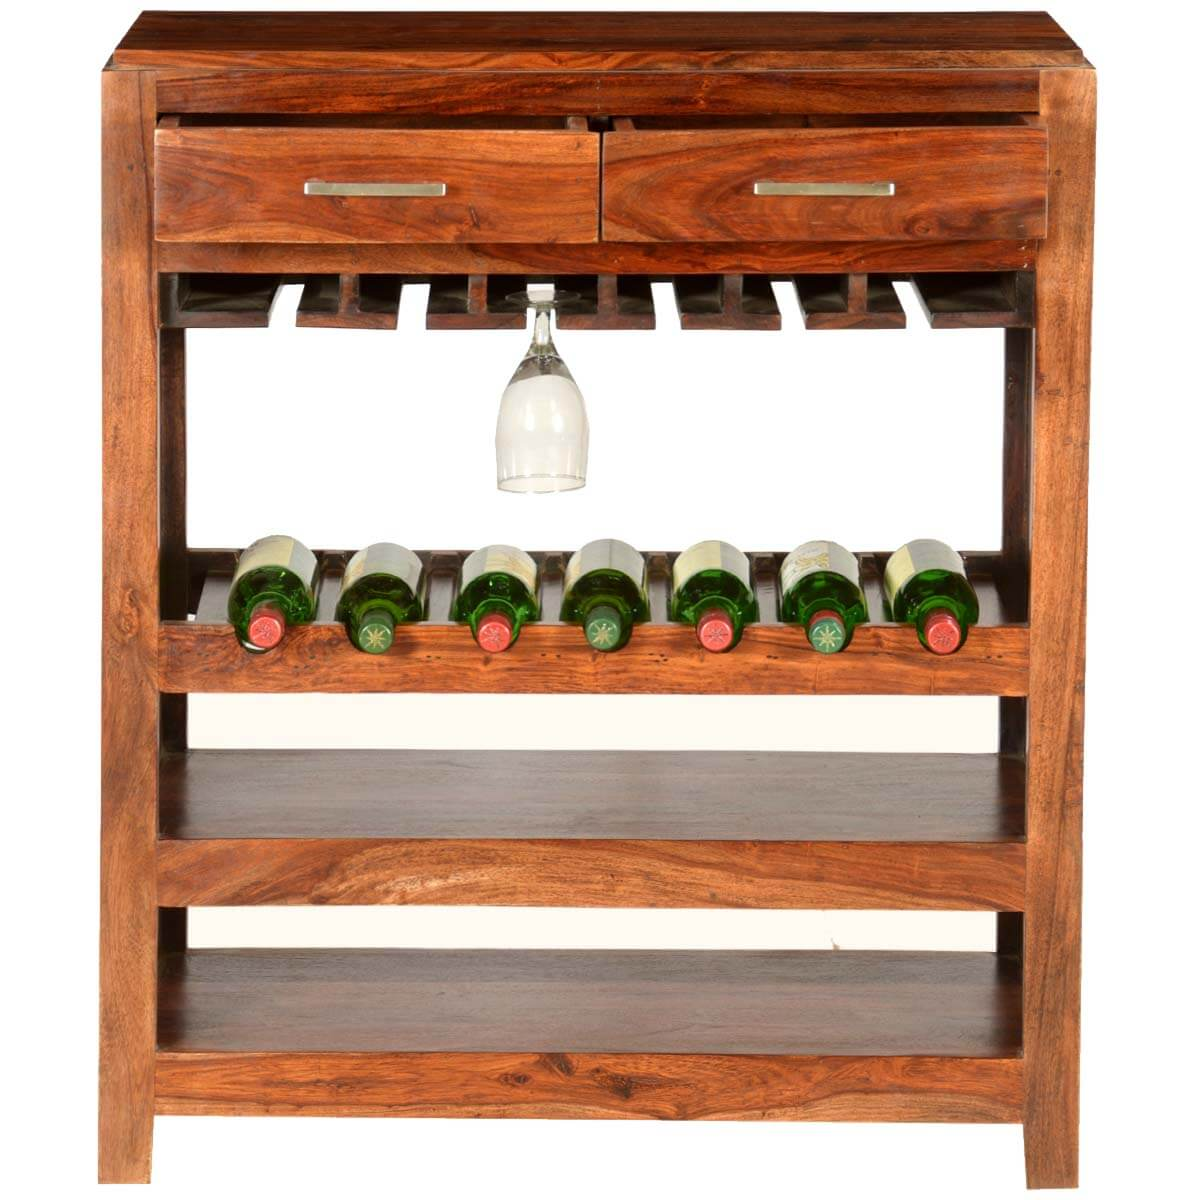 Modern Wine Rack Furniture Pioneer Modern Solid Wood 7 Bottle Wine Rack Bar Cabinet